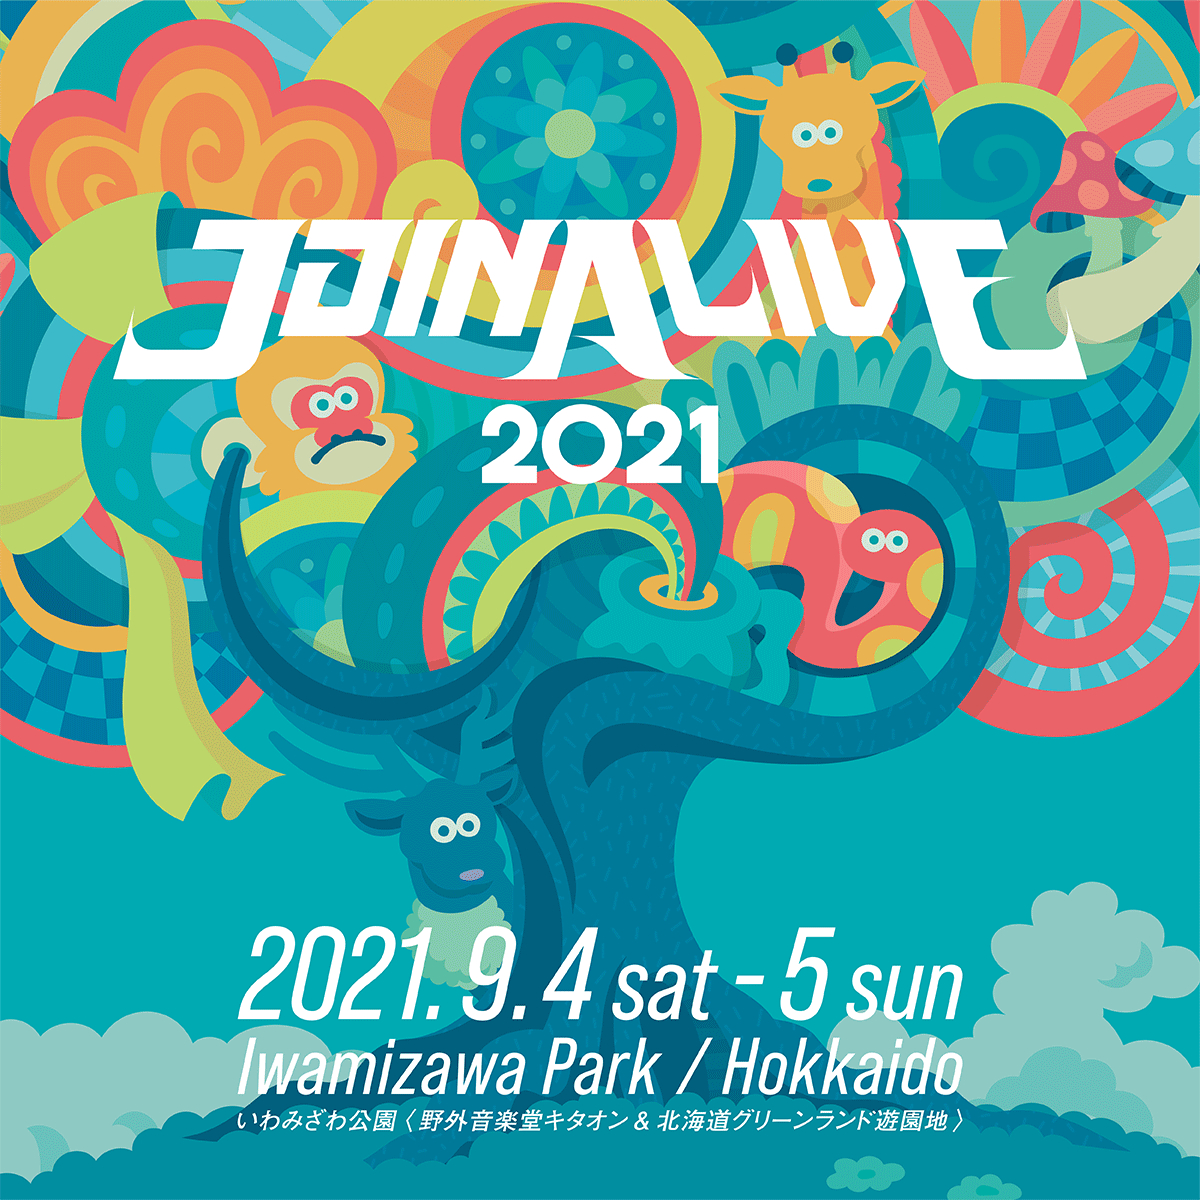 『JOIN ALIVE 2021』フライヤー